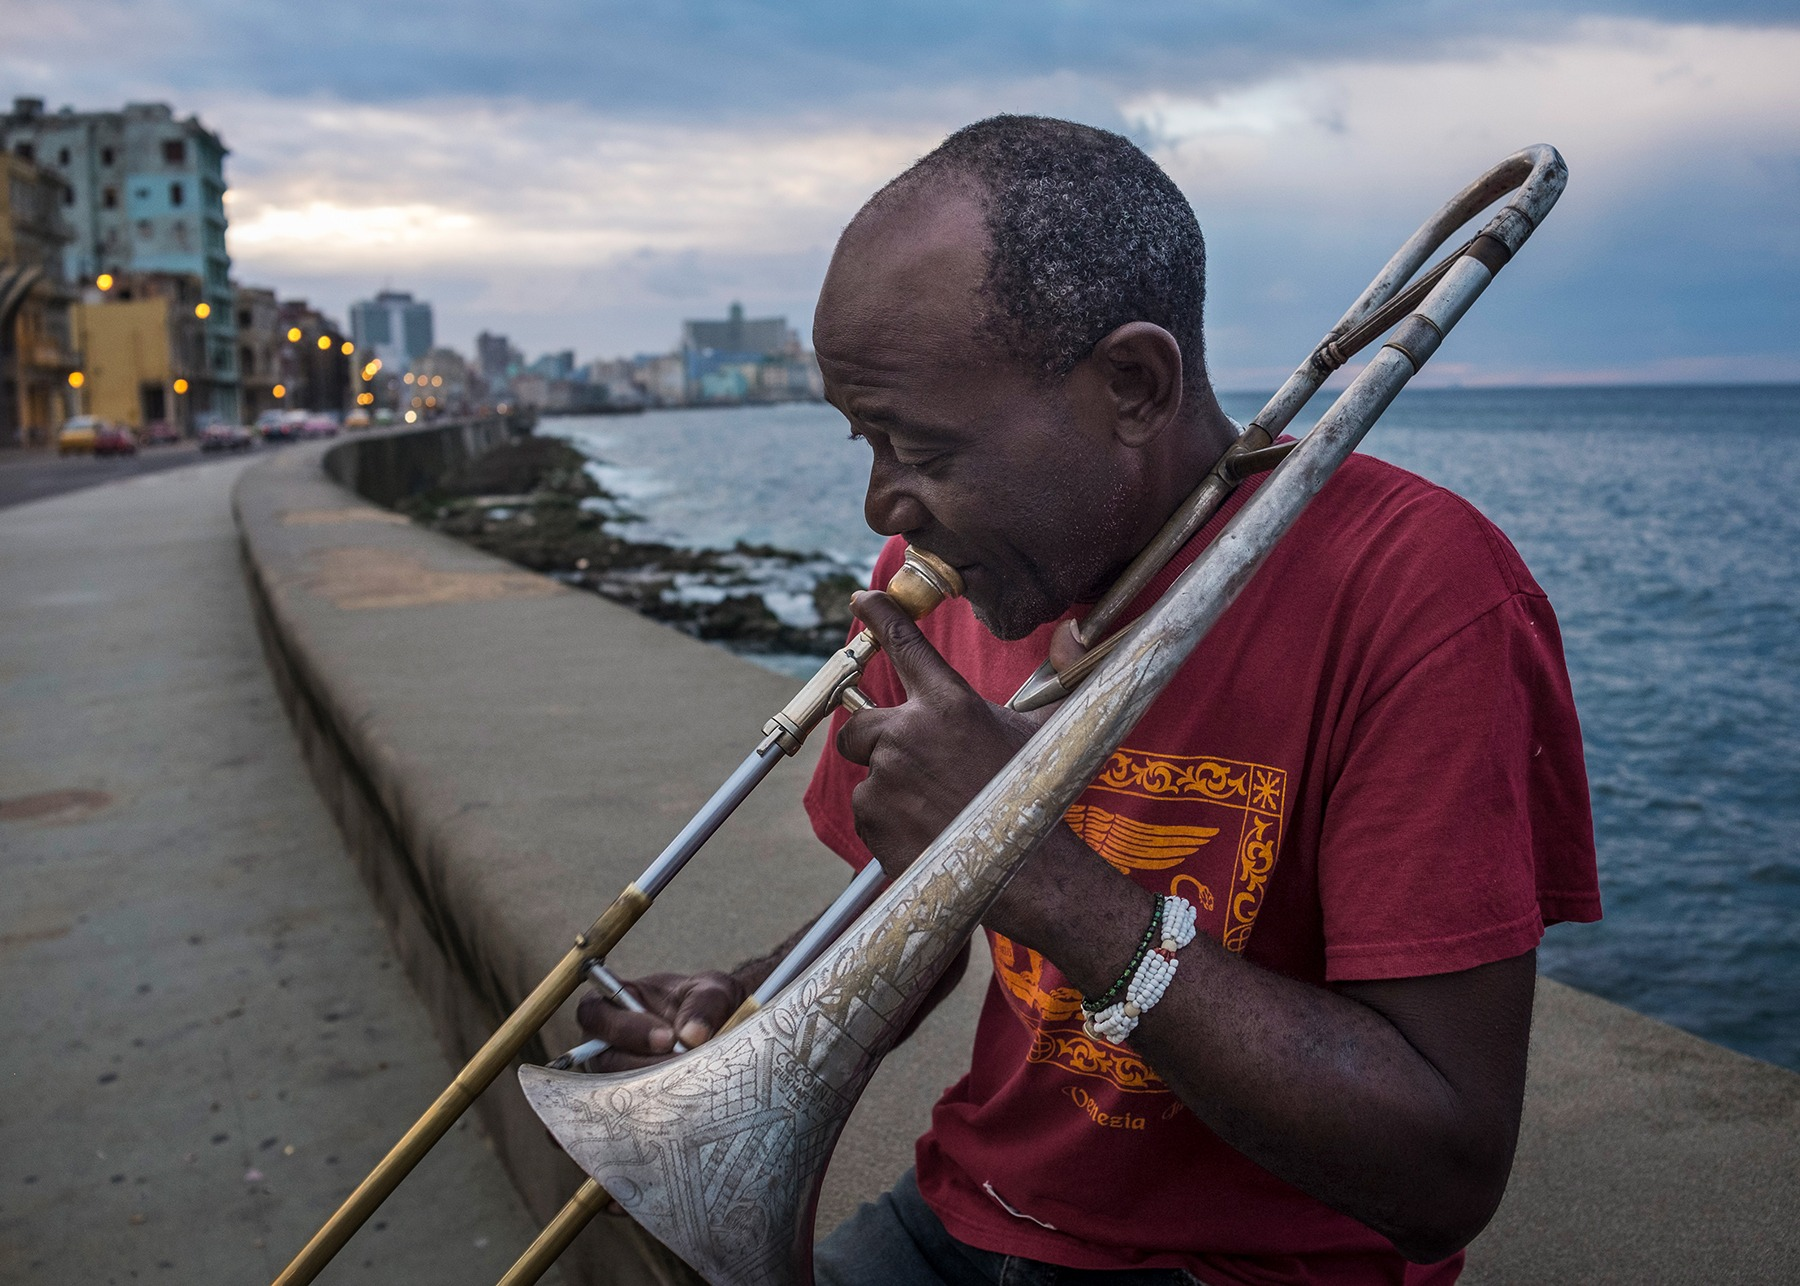 Man playing the trumpet on the malecon, cuba photo tours